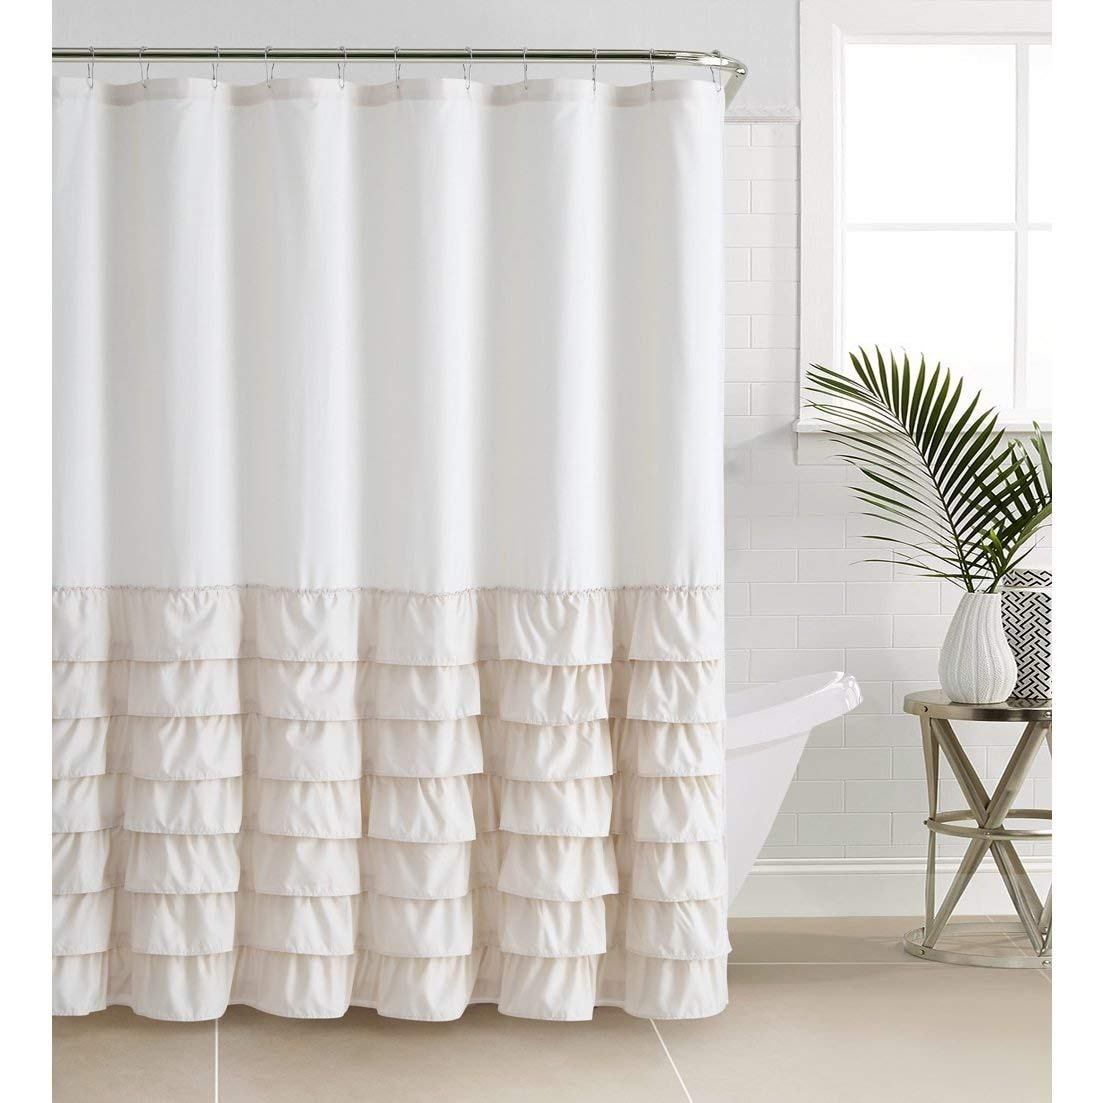 Cheap French Themed Shower Curtain Find French Themed